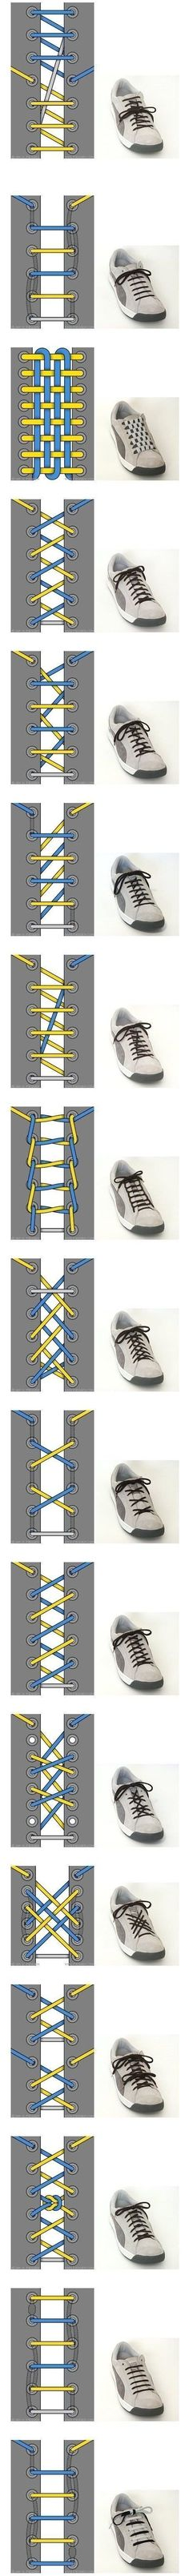 17 Ways To Tie Your Shoelaces - Cool Recommendations